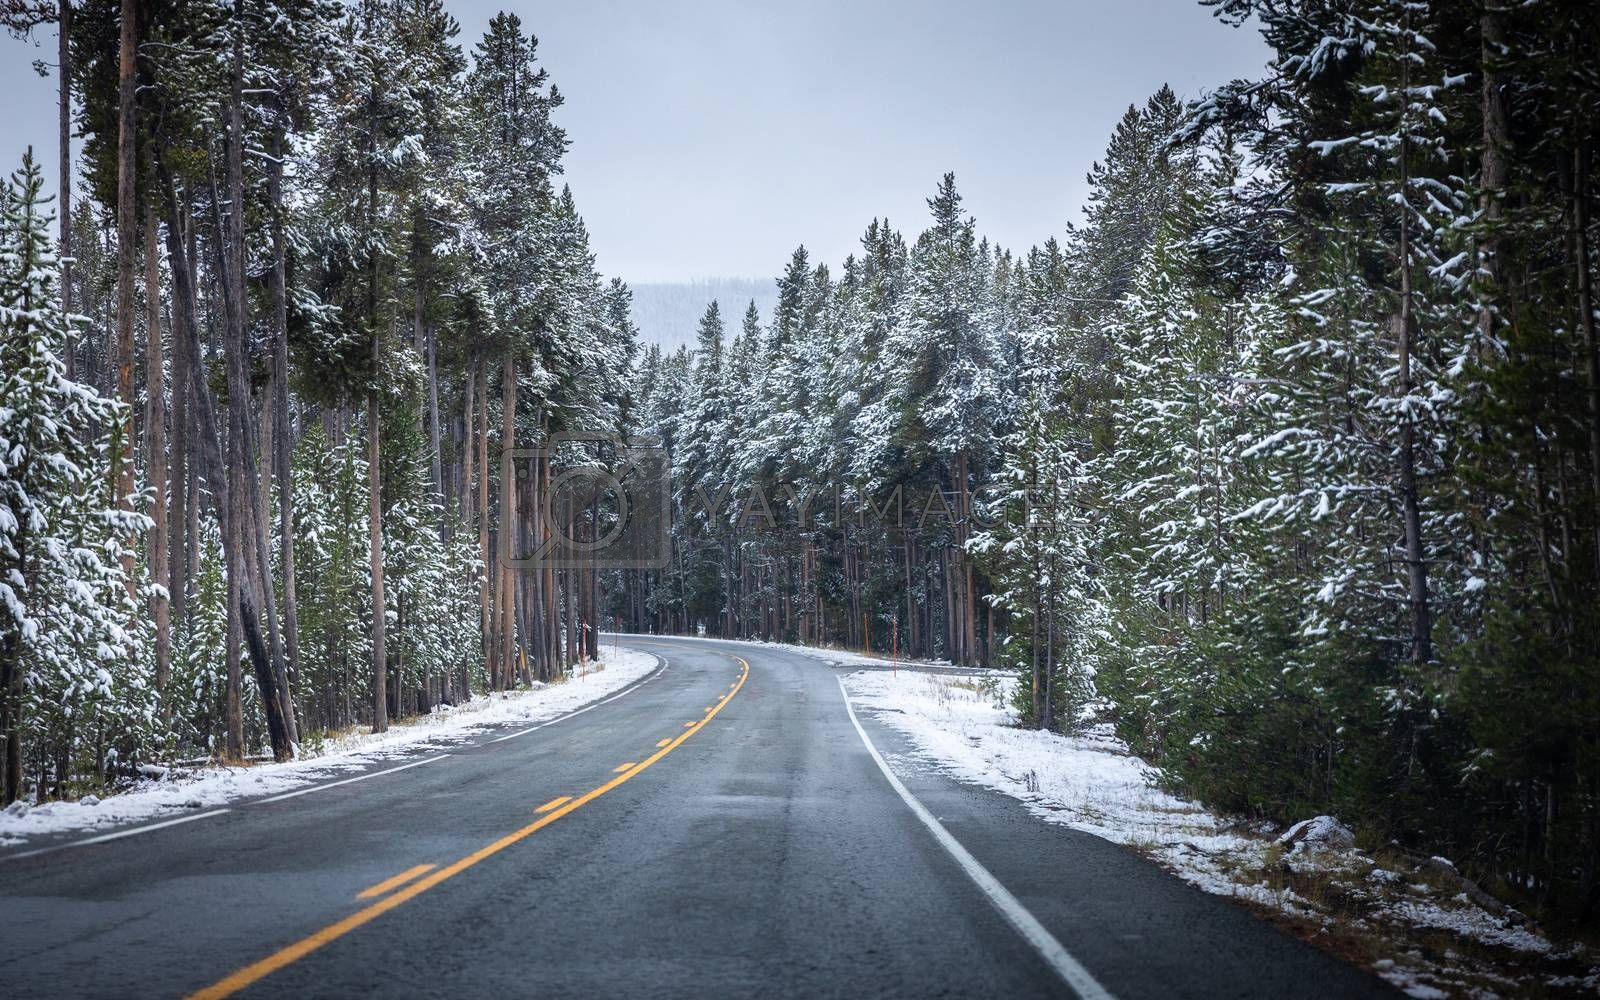 Road inside forest of Yellowstone National Park, Wyoming with pine trees covered by snow in early October. Main roads starting to close soon due to snow problem in winter season.